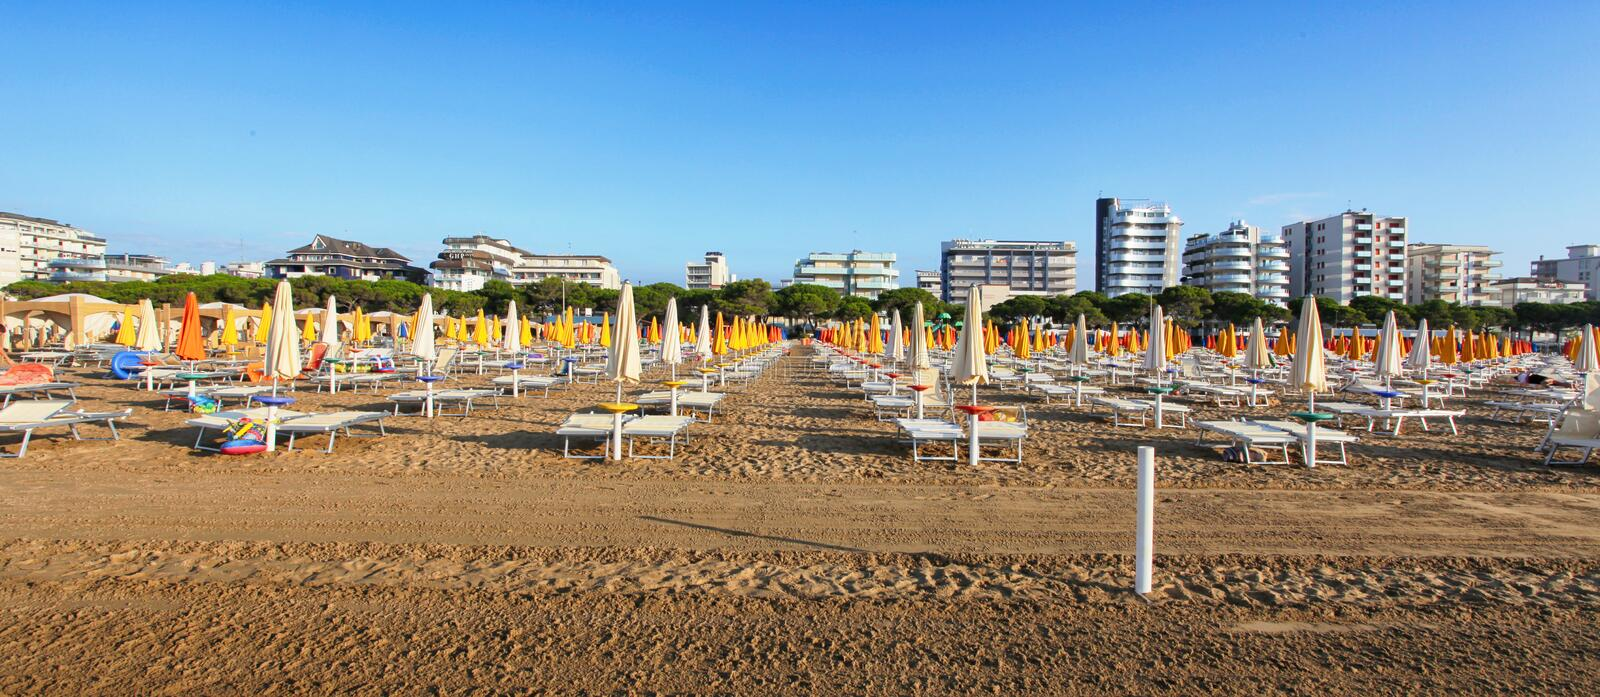 Beach On the Sea. Adriatic sea with shore. Lignano Sabbiadoro, Italy royalty free stock photo